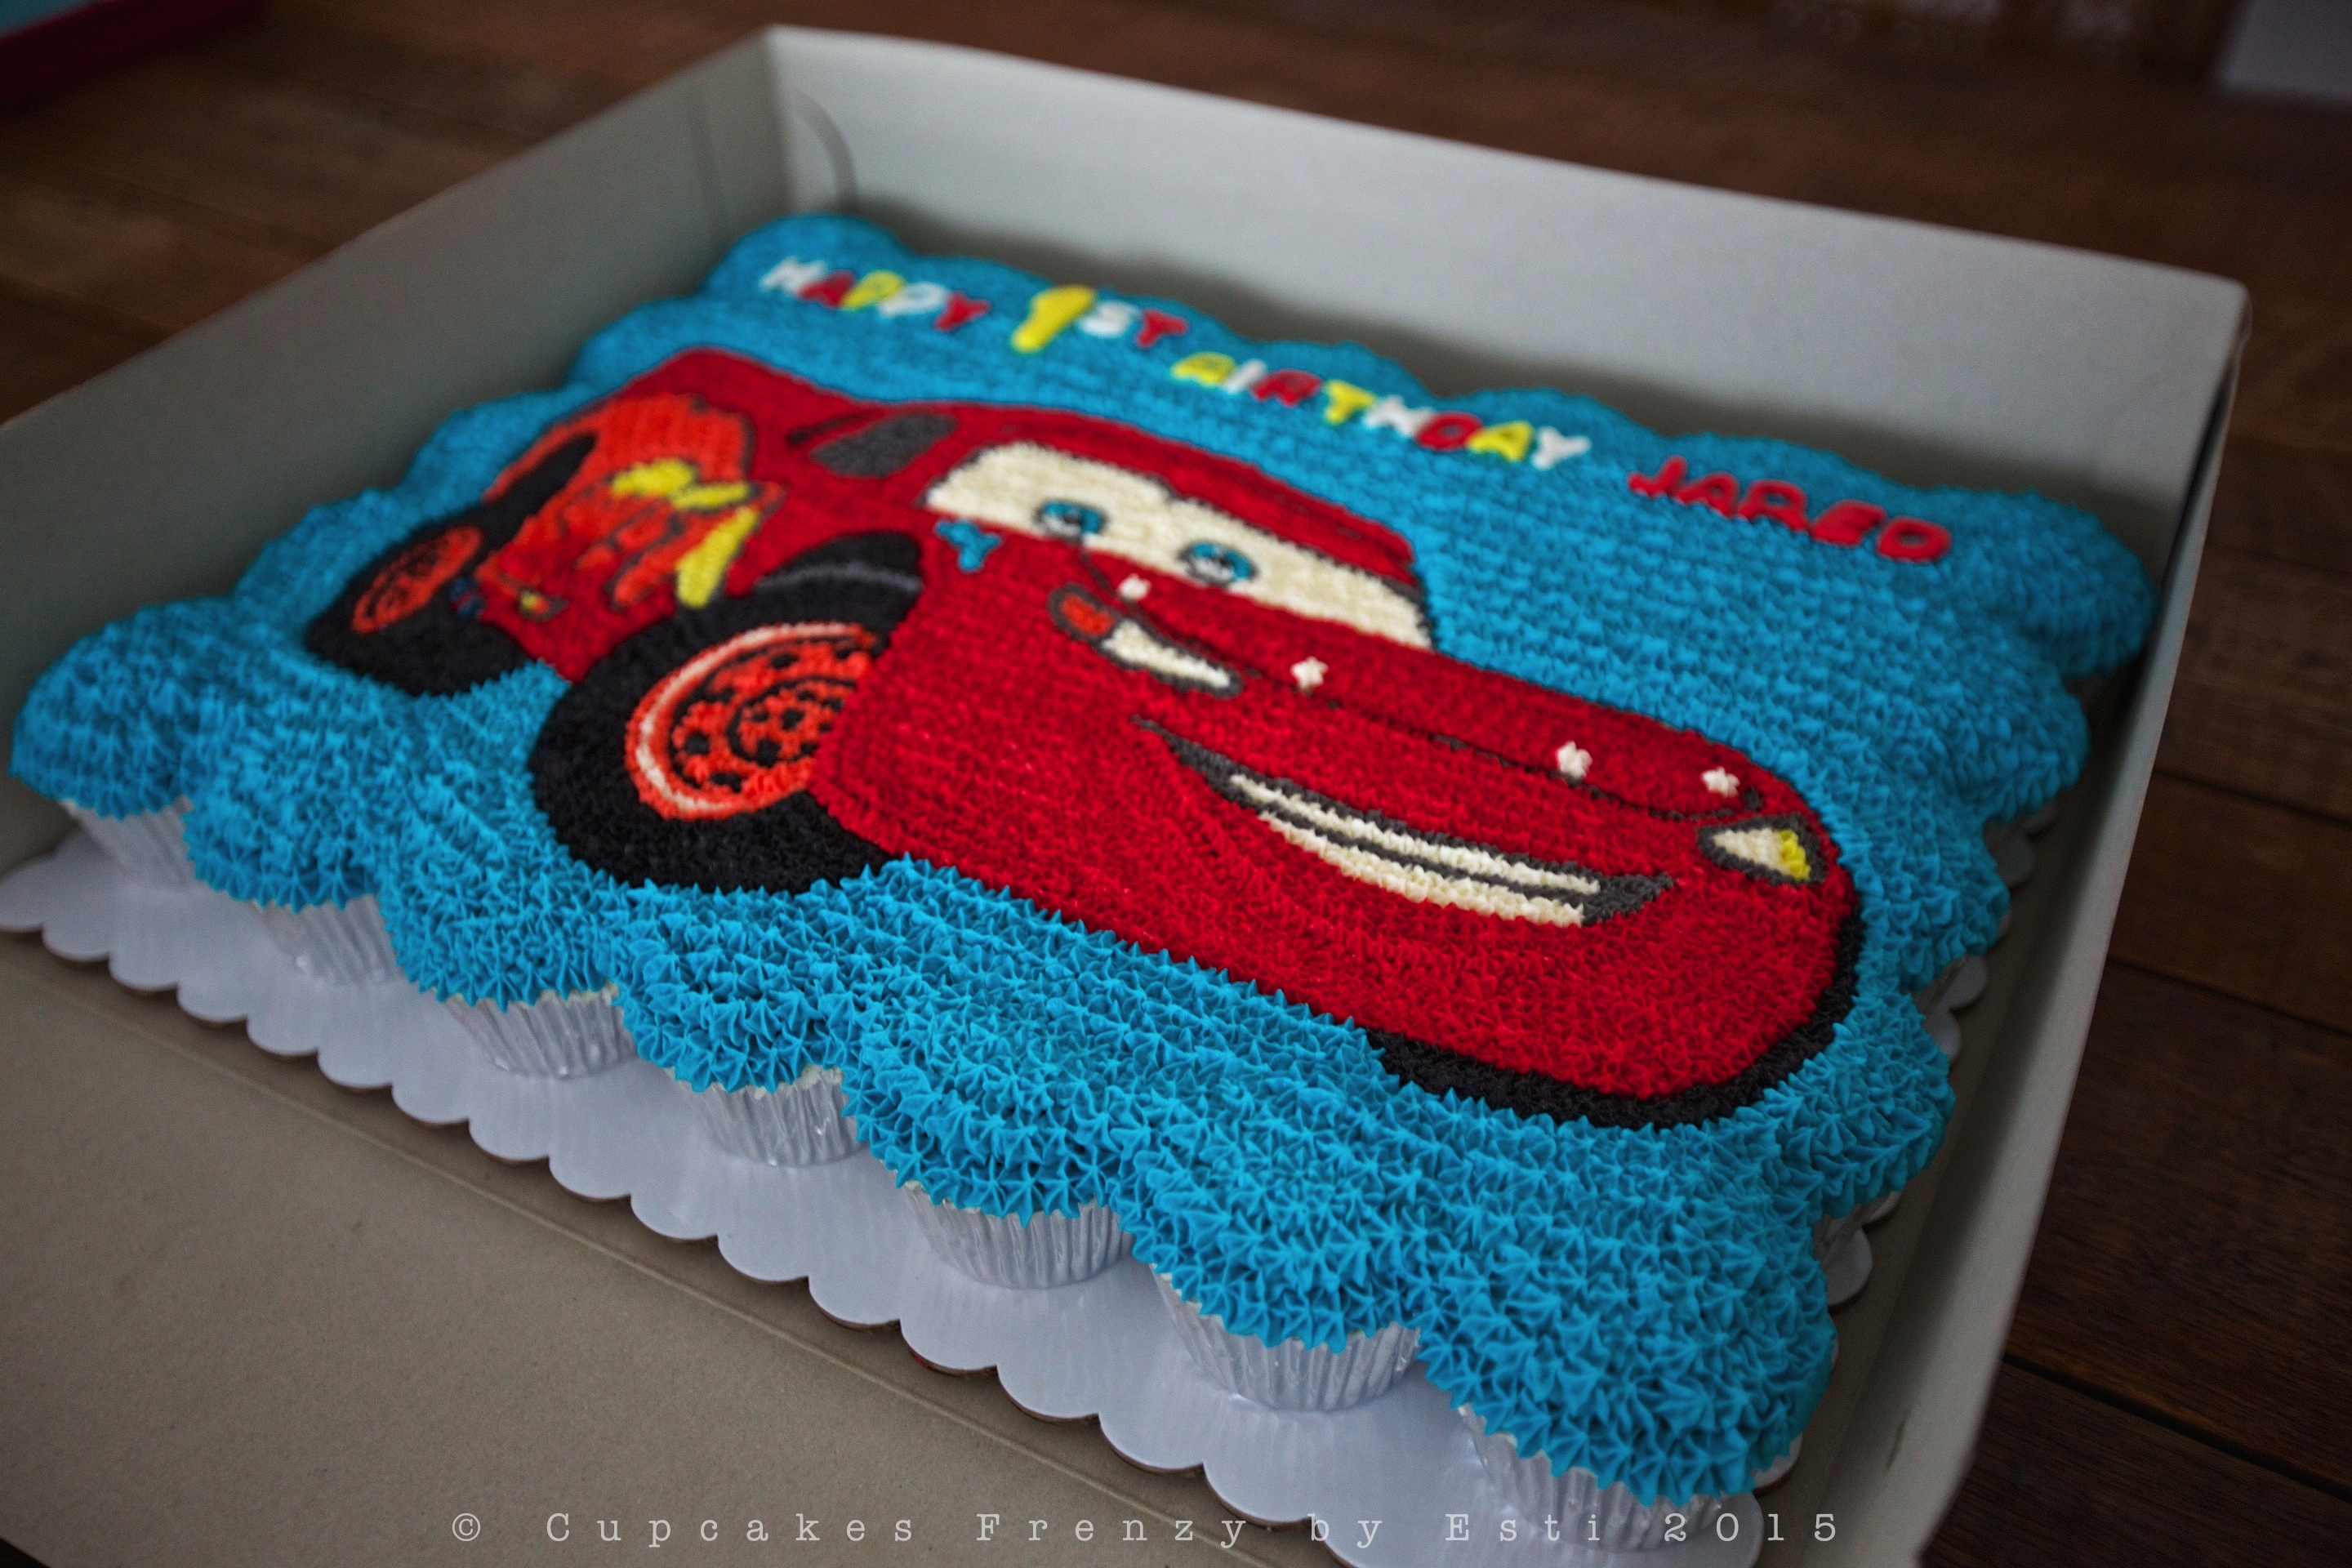 lightning mcqueen cupcake Cupcakes Frenzy